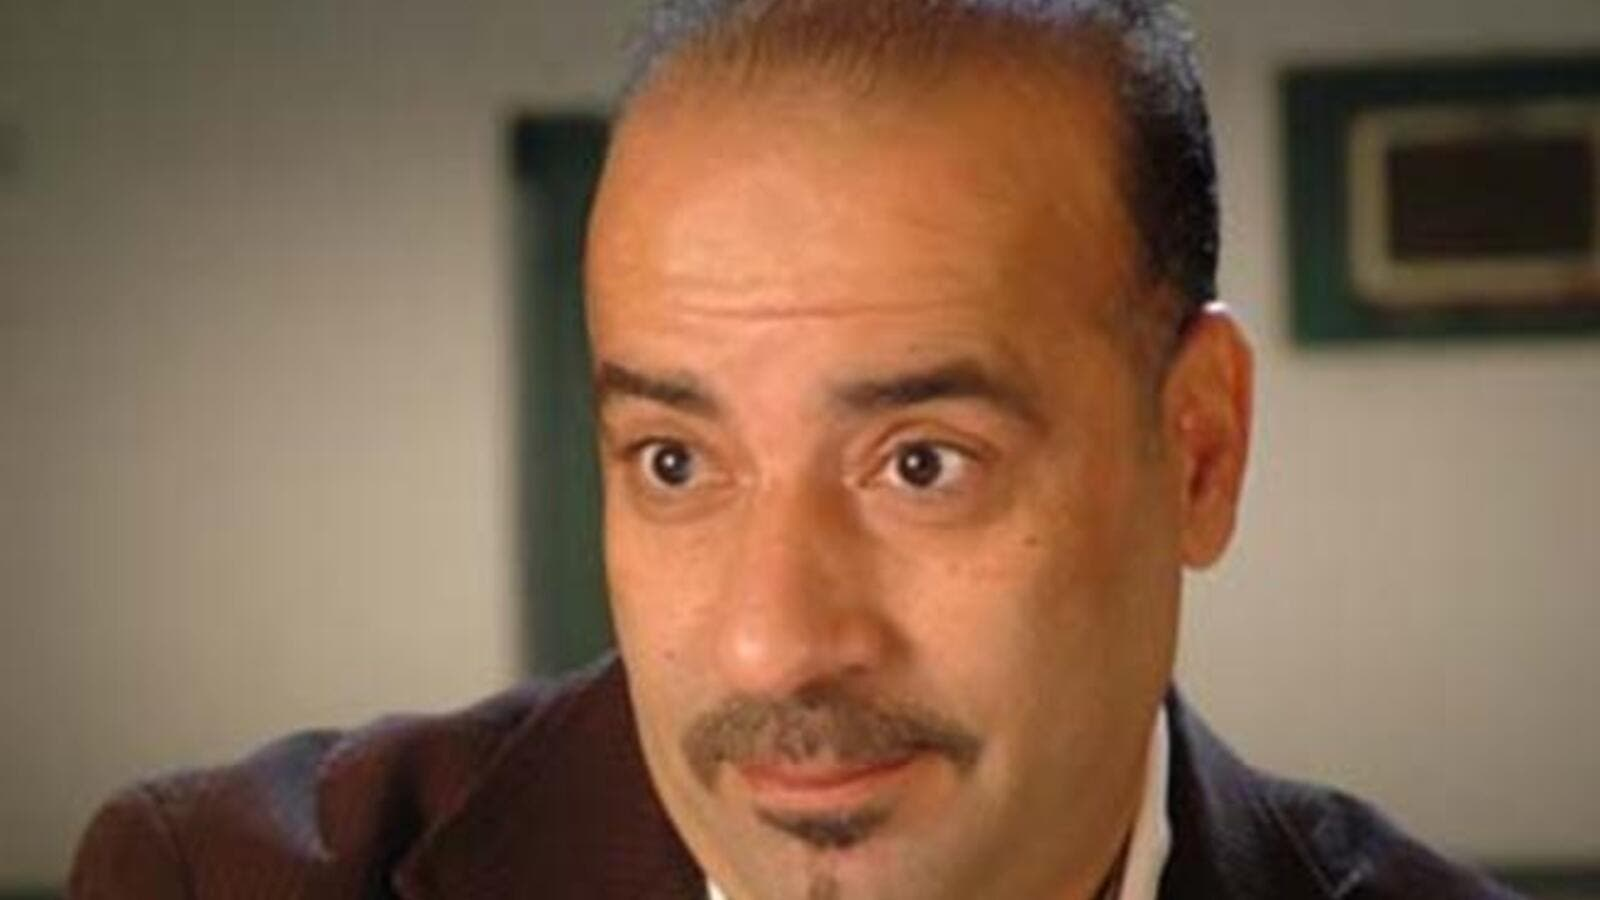 Winning: Mohamed Saad got his revenge on TV channels who refused to pay him the remainder of his business payment. (Image: AlBawaba)